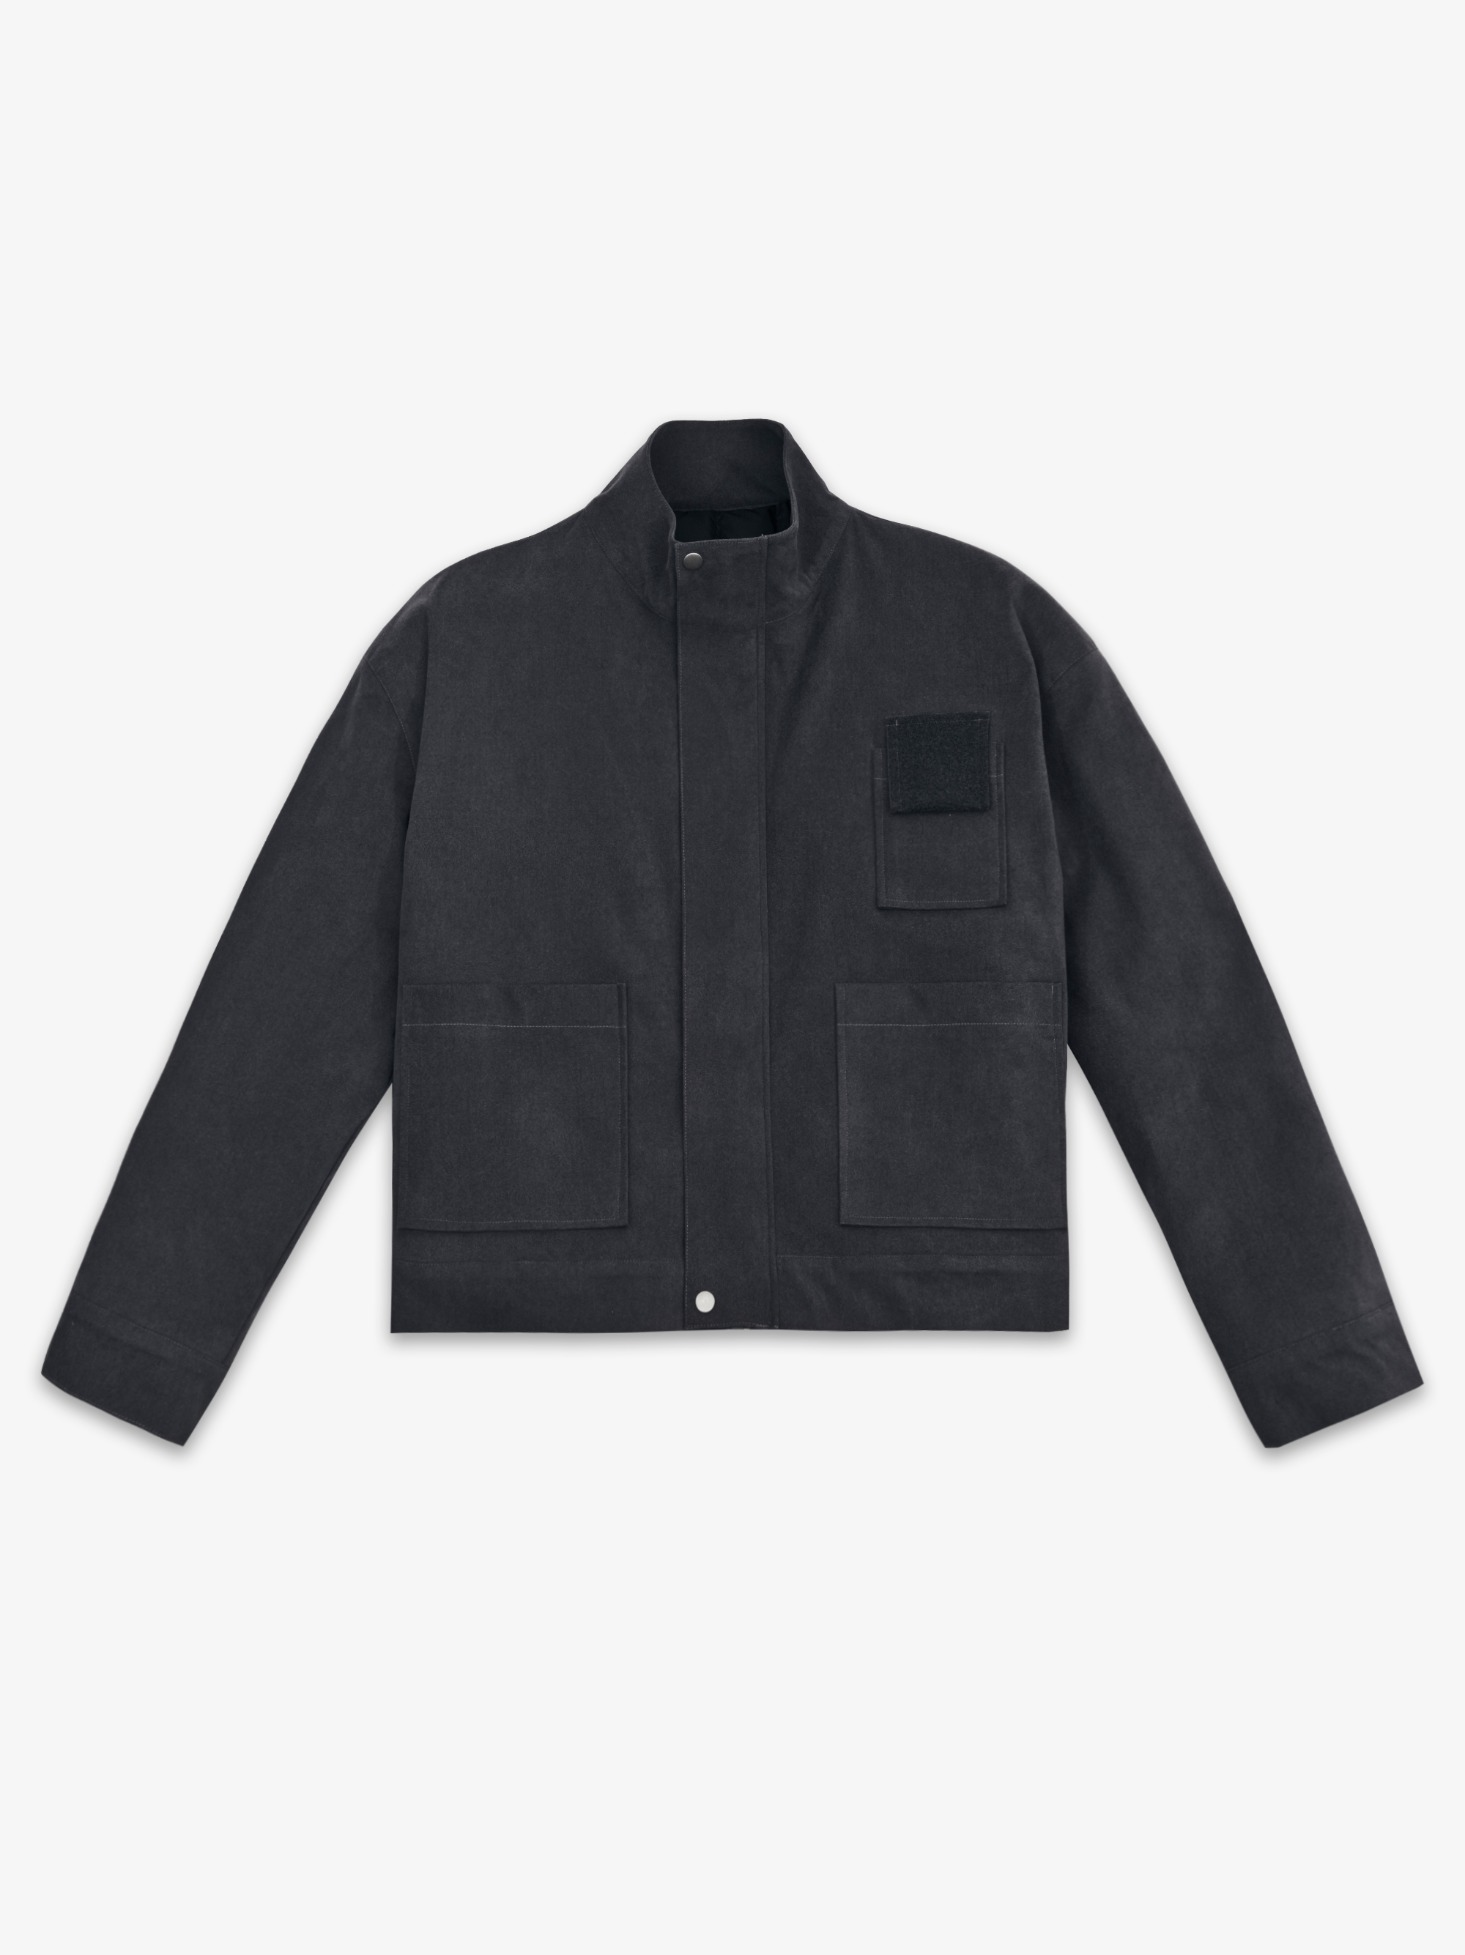 FYUCHR MOBILE JACKET(CHARCOAL)